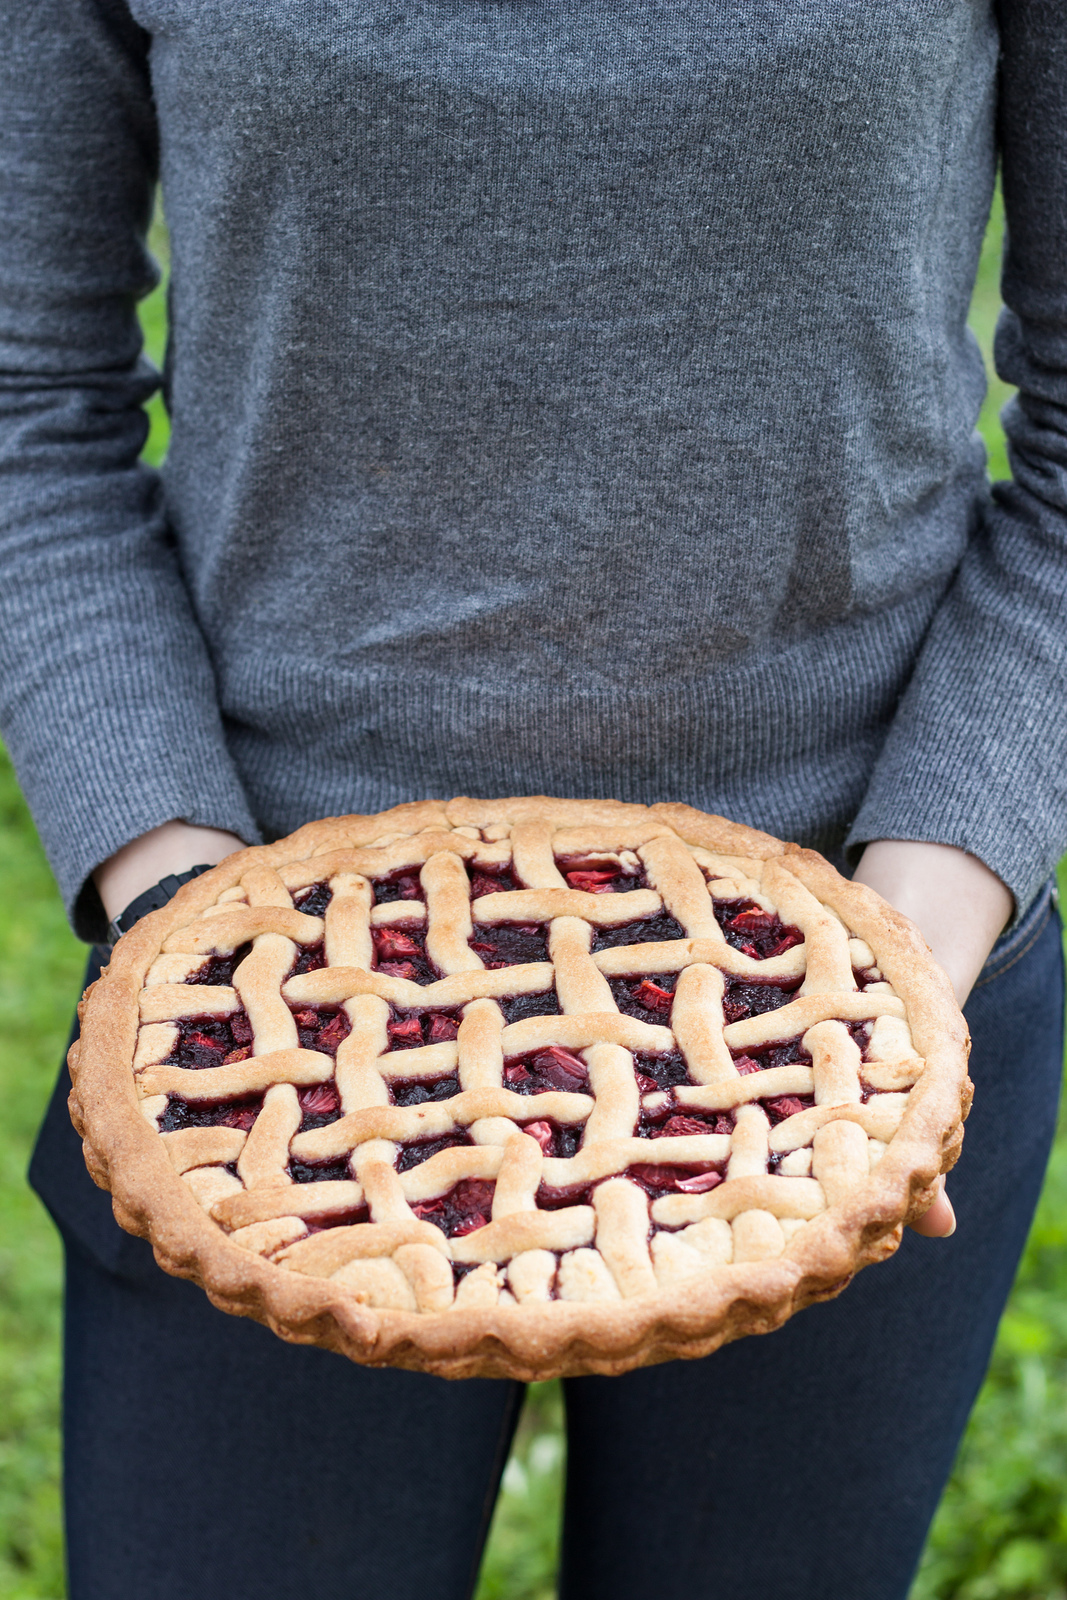 A Simple Crostata: Thank You For The Ordinary That Becomes Extraordinary